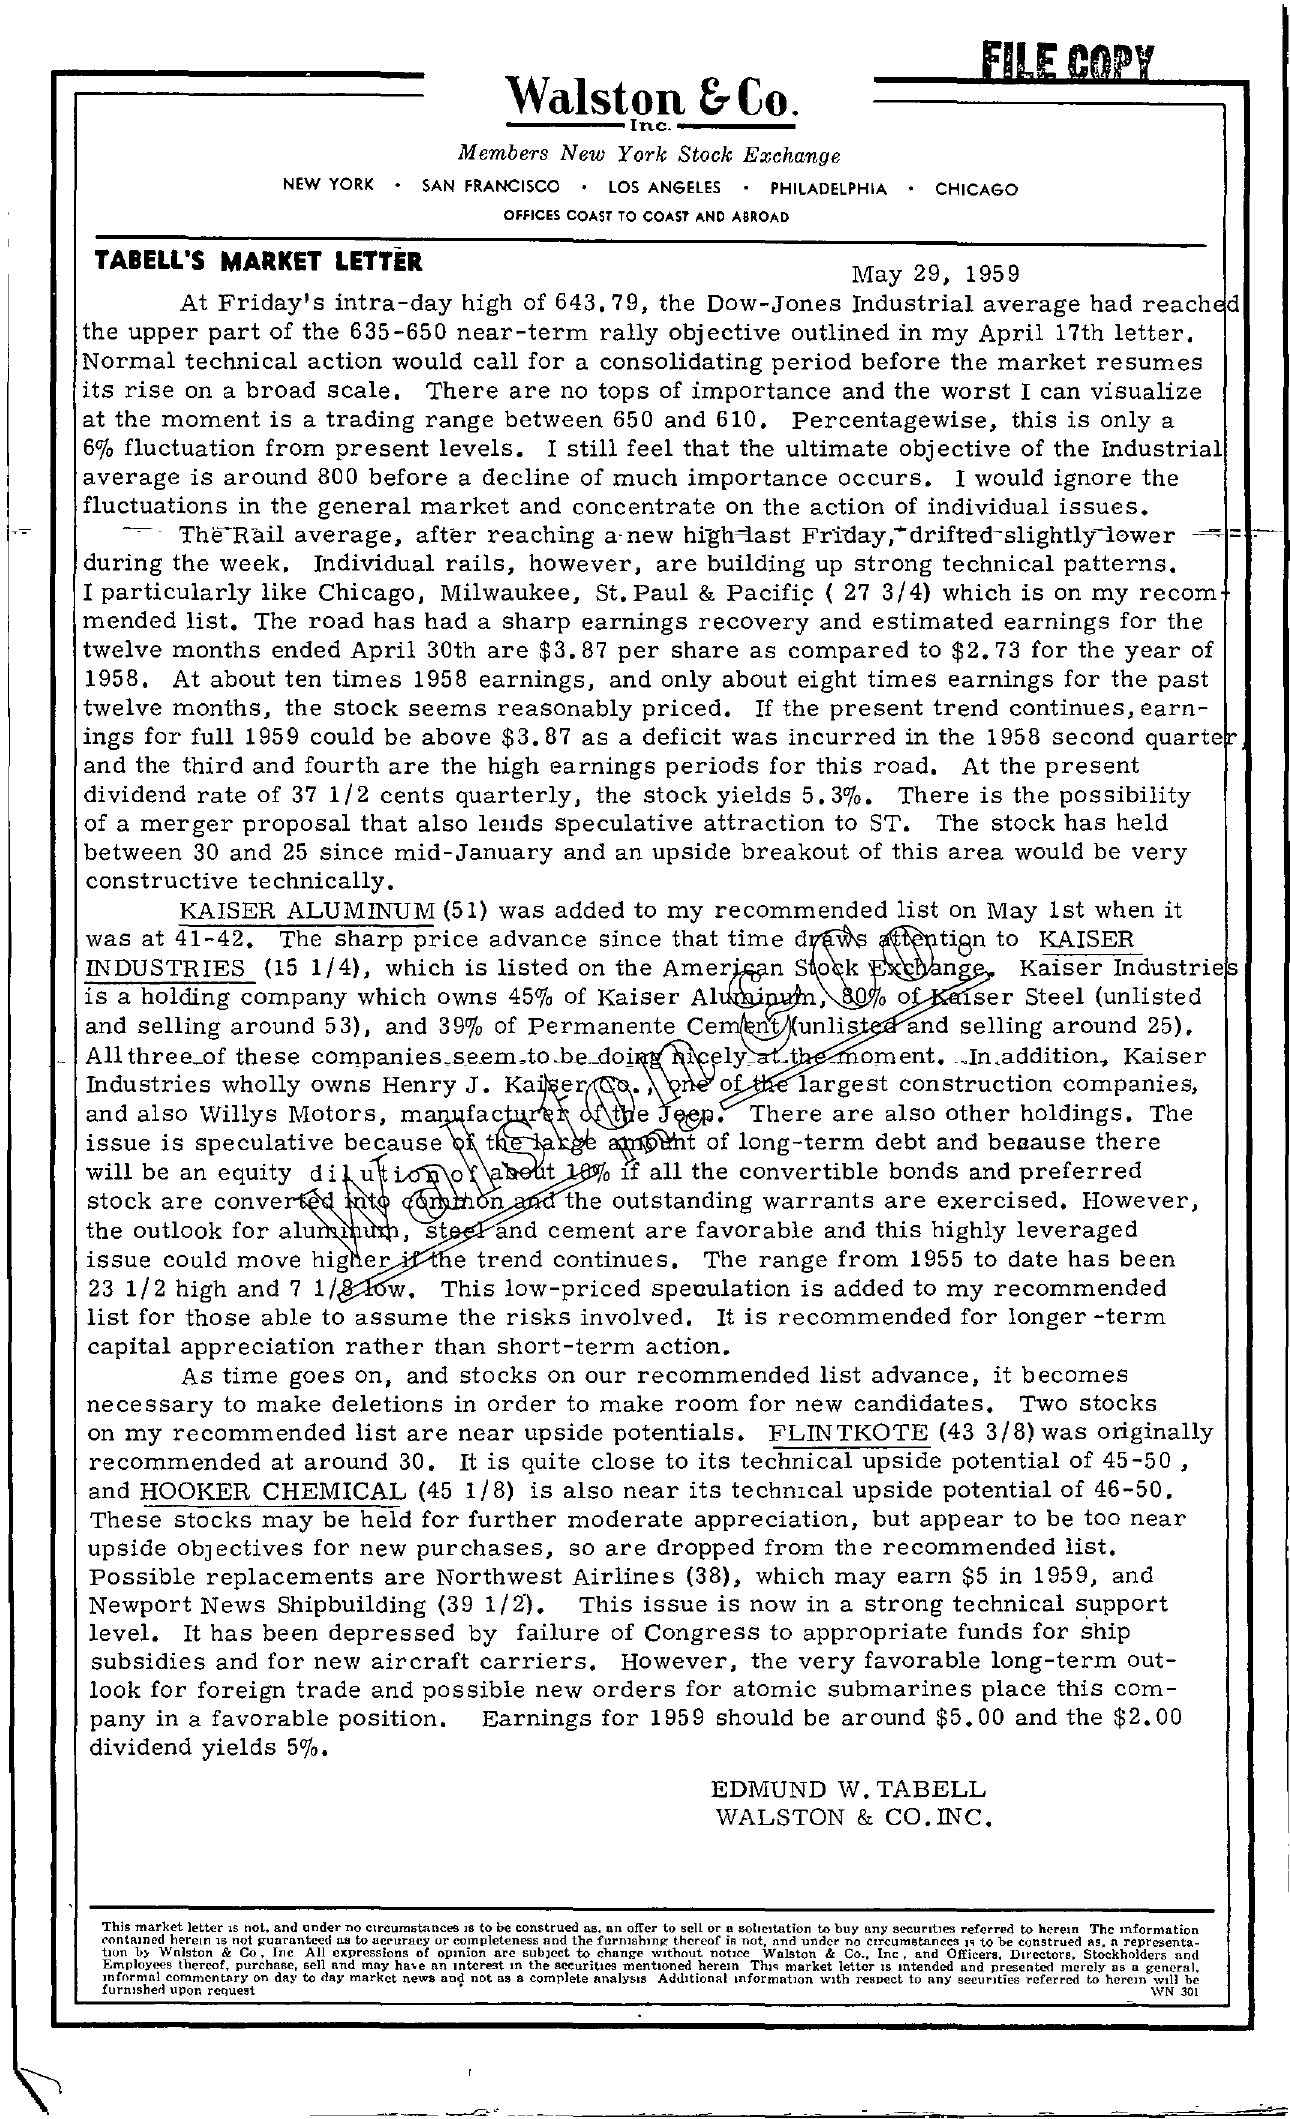 Tabell's Market Letter - May 29, 1959